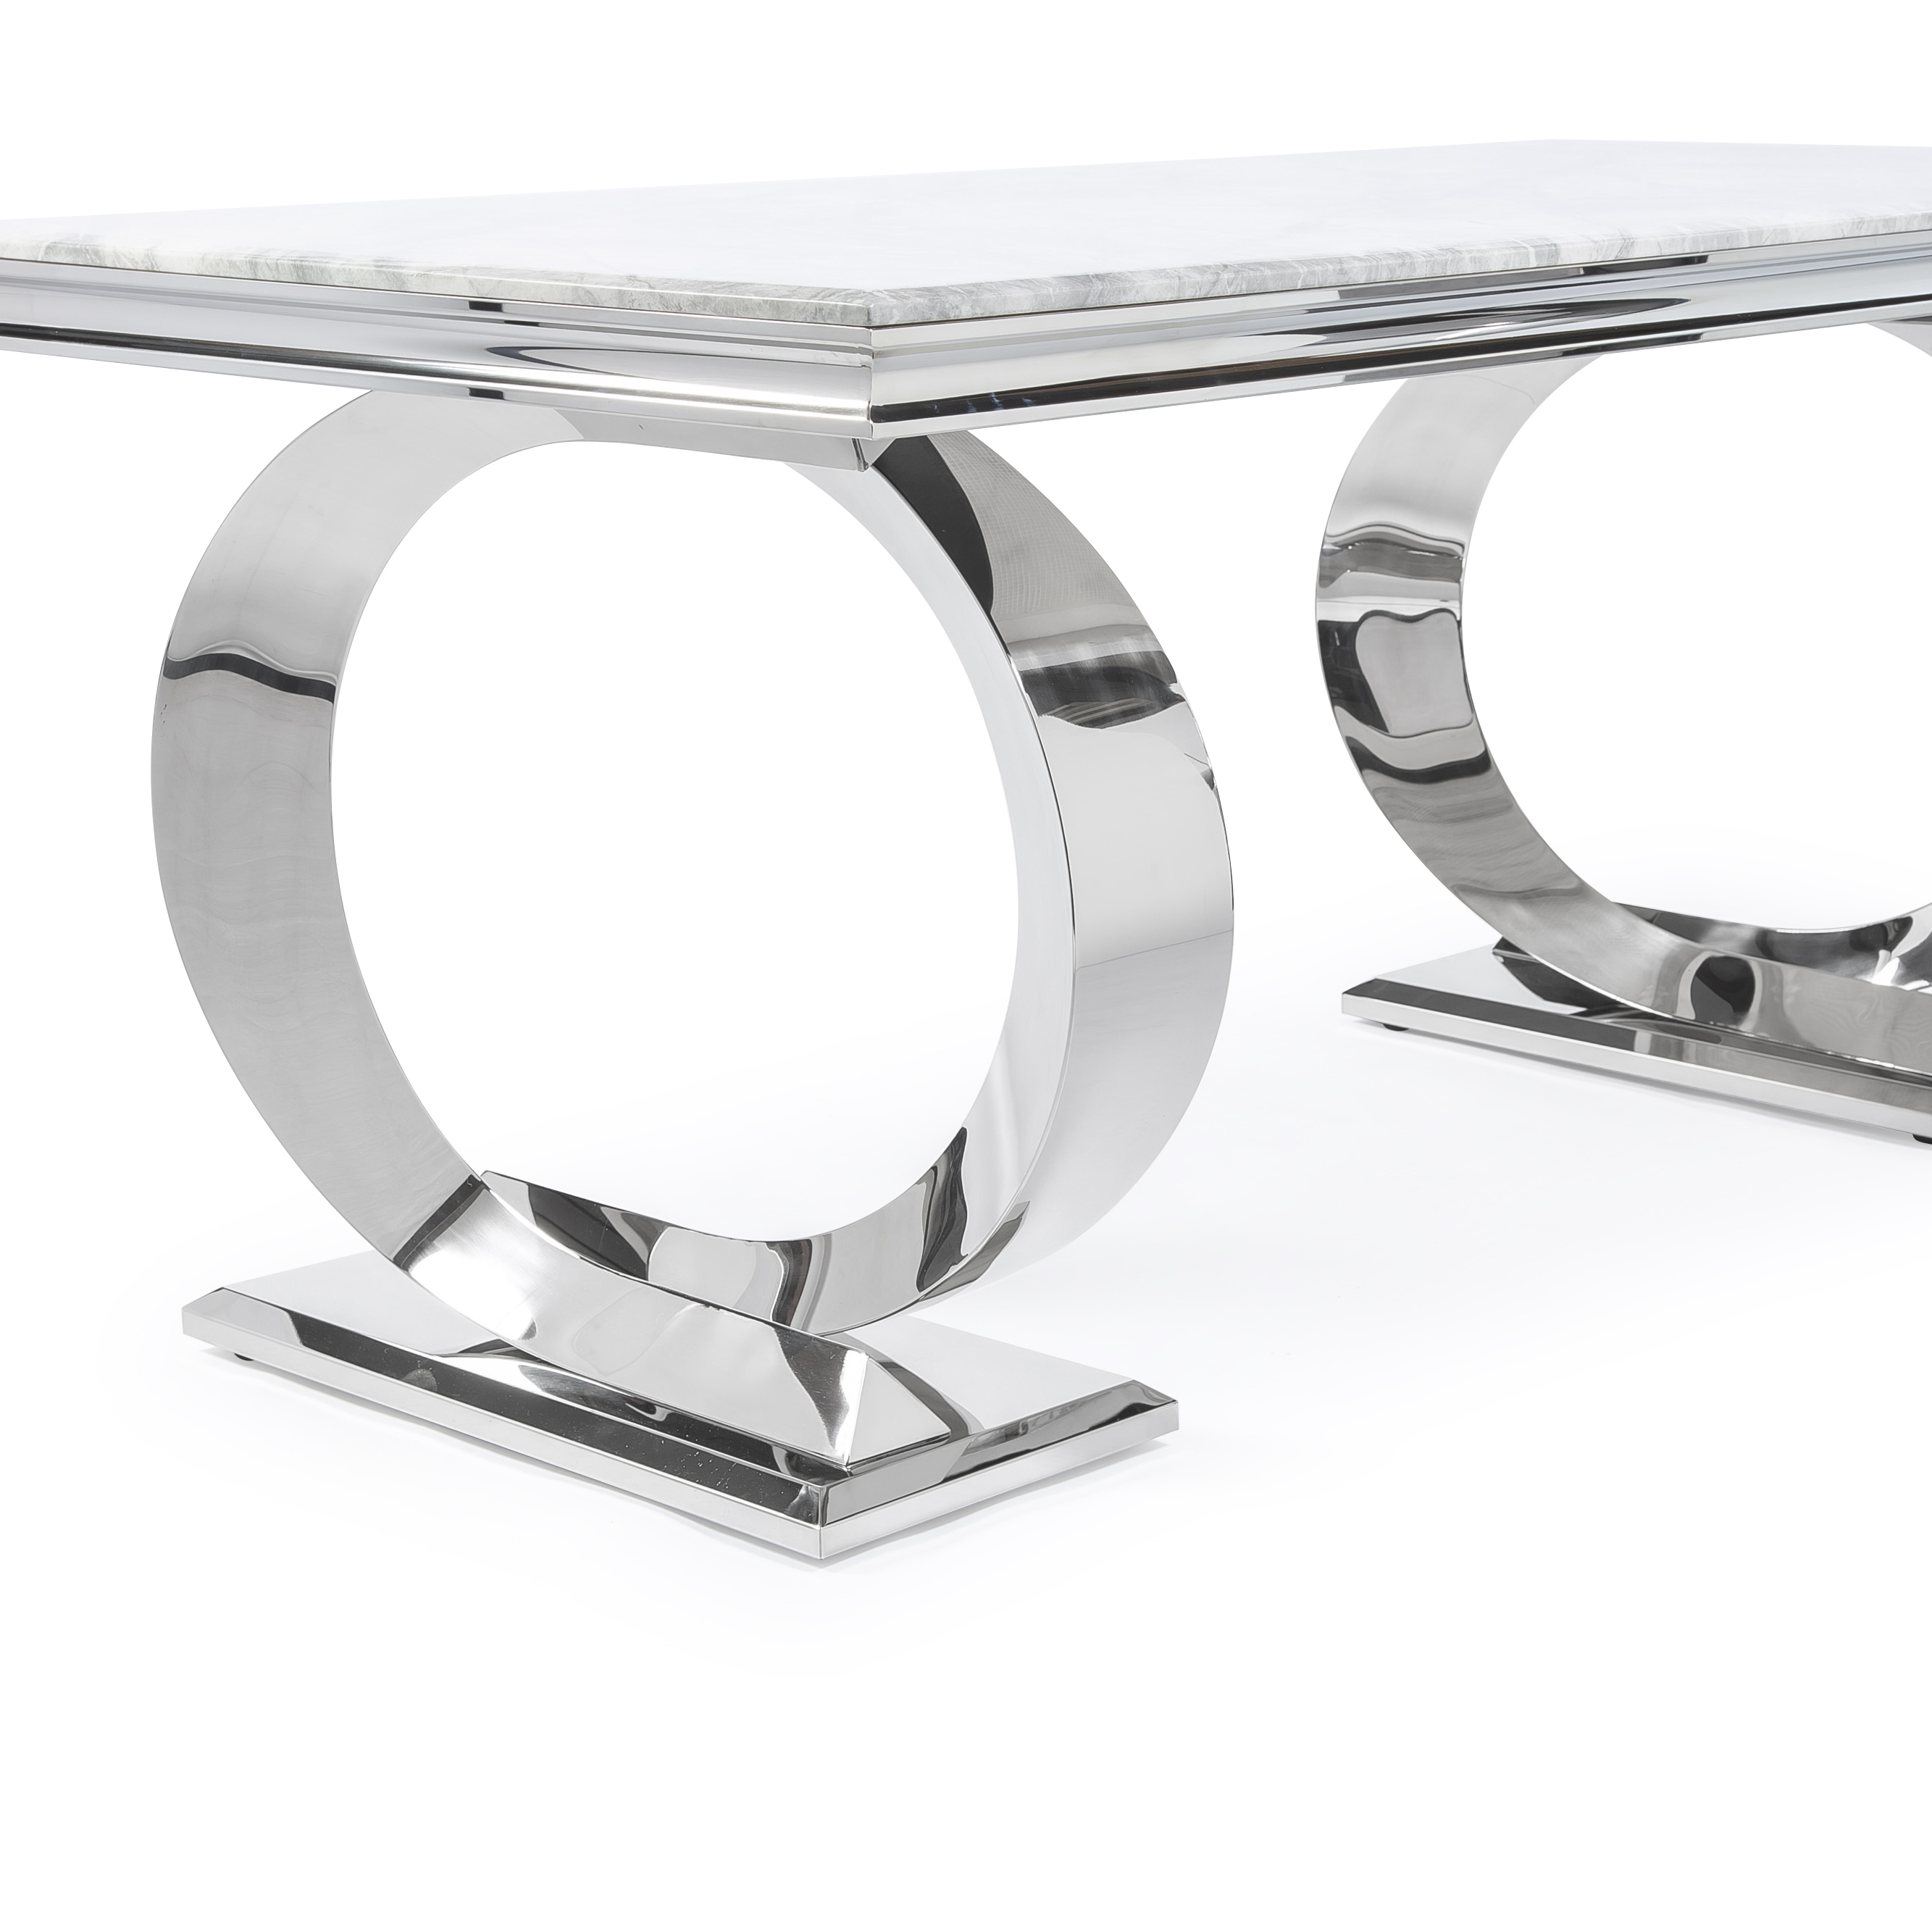 1.8M Pisa Polished Steel Dining Table with Grey Marble Top